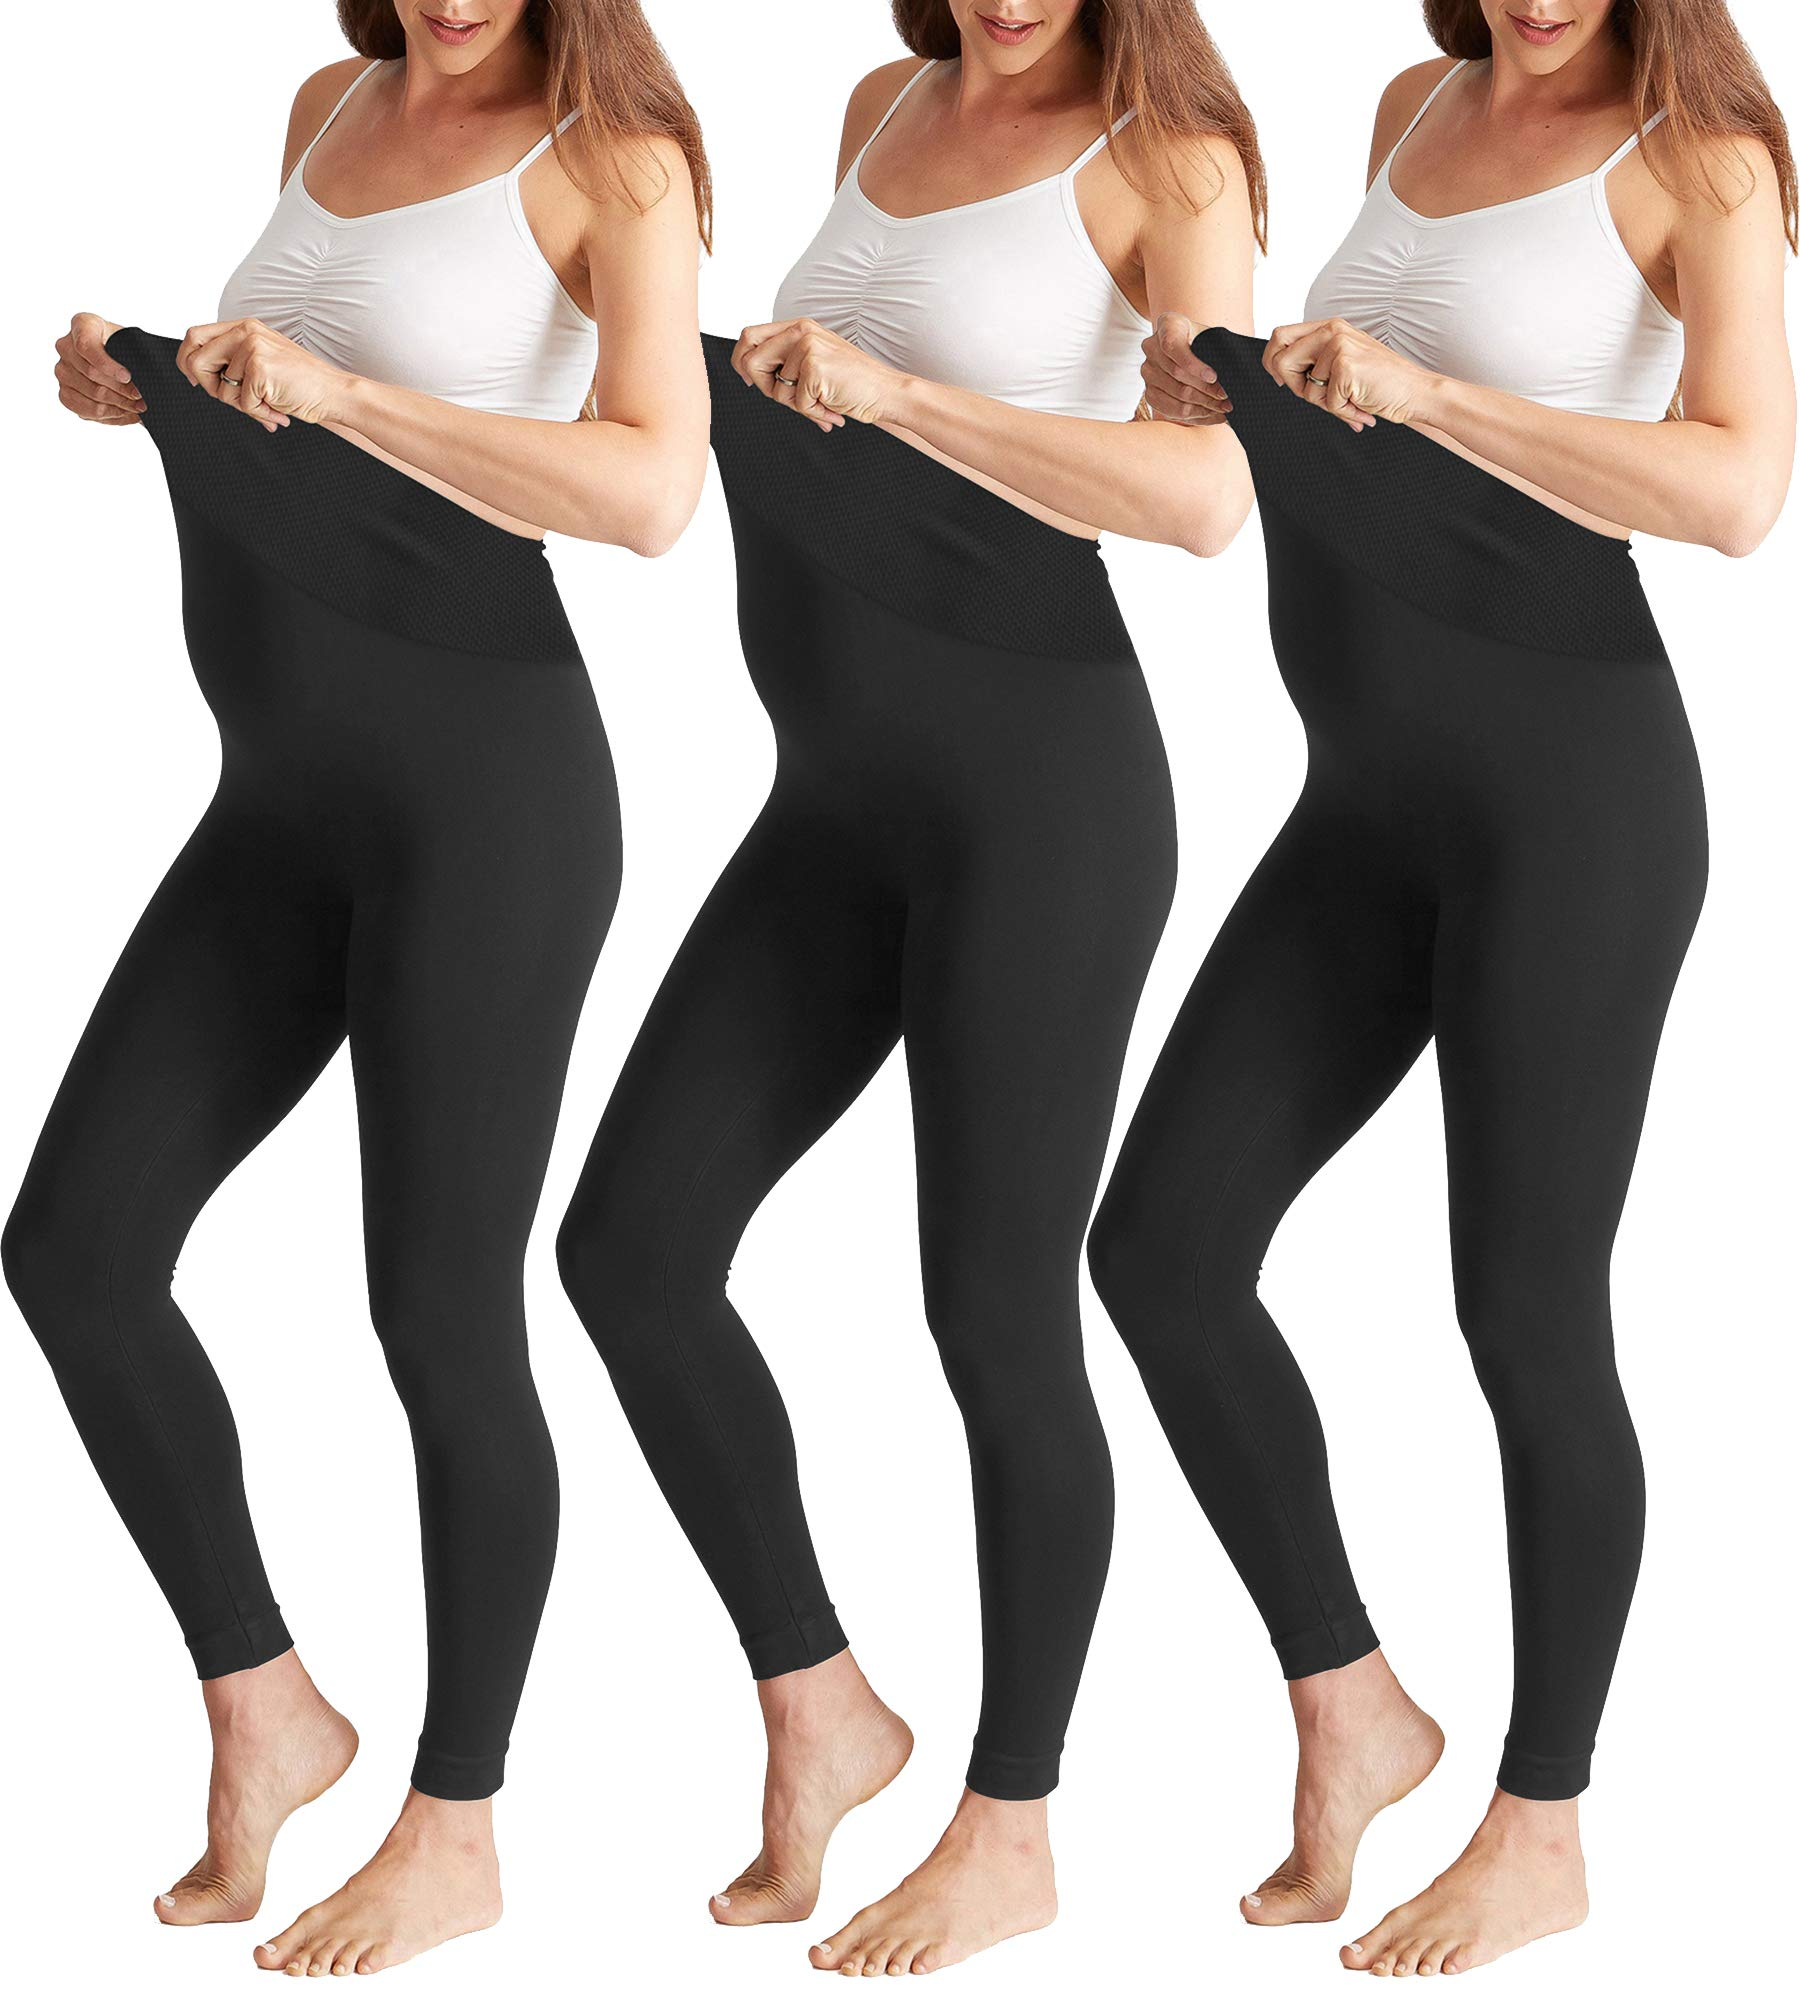 Maternity Leggings Over The Belly Activewear Stretch Nursing Clothes Black 3 Pk by Shop Pretty Girl